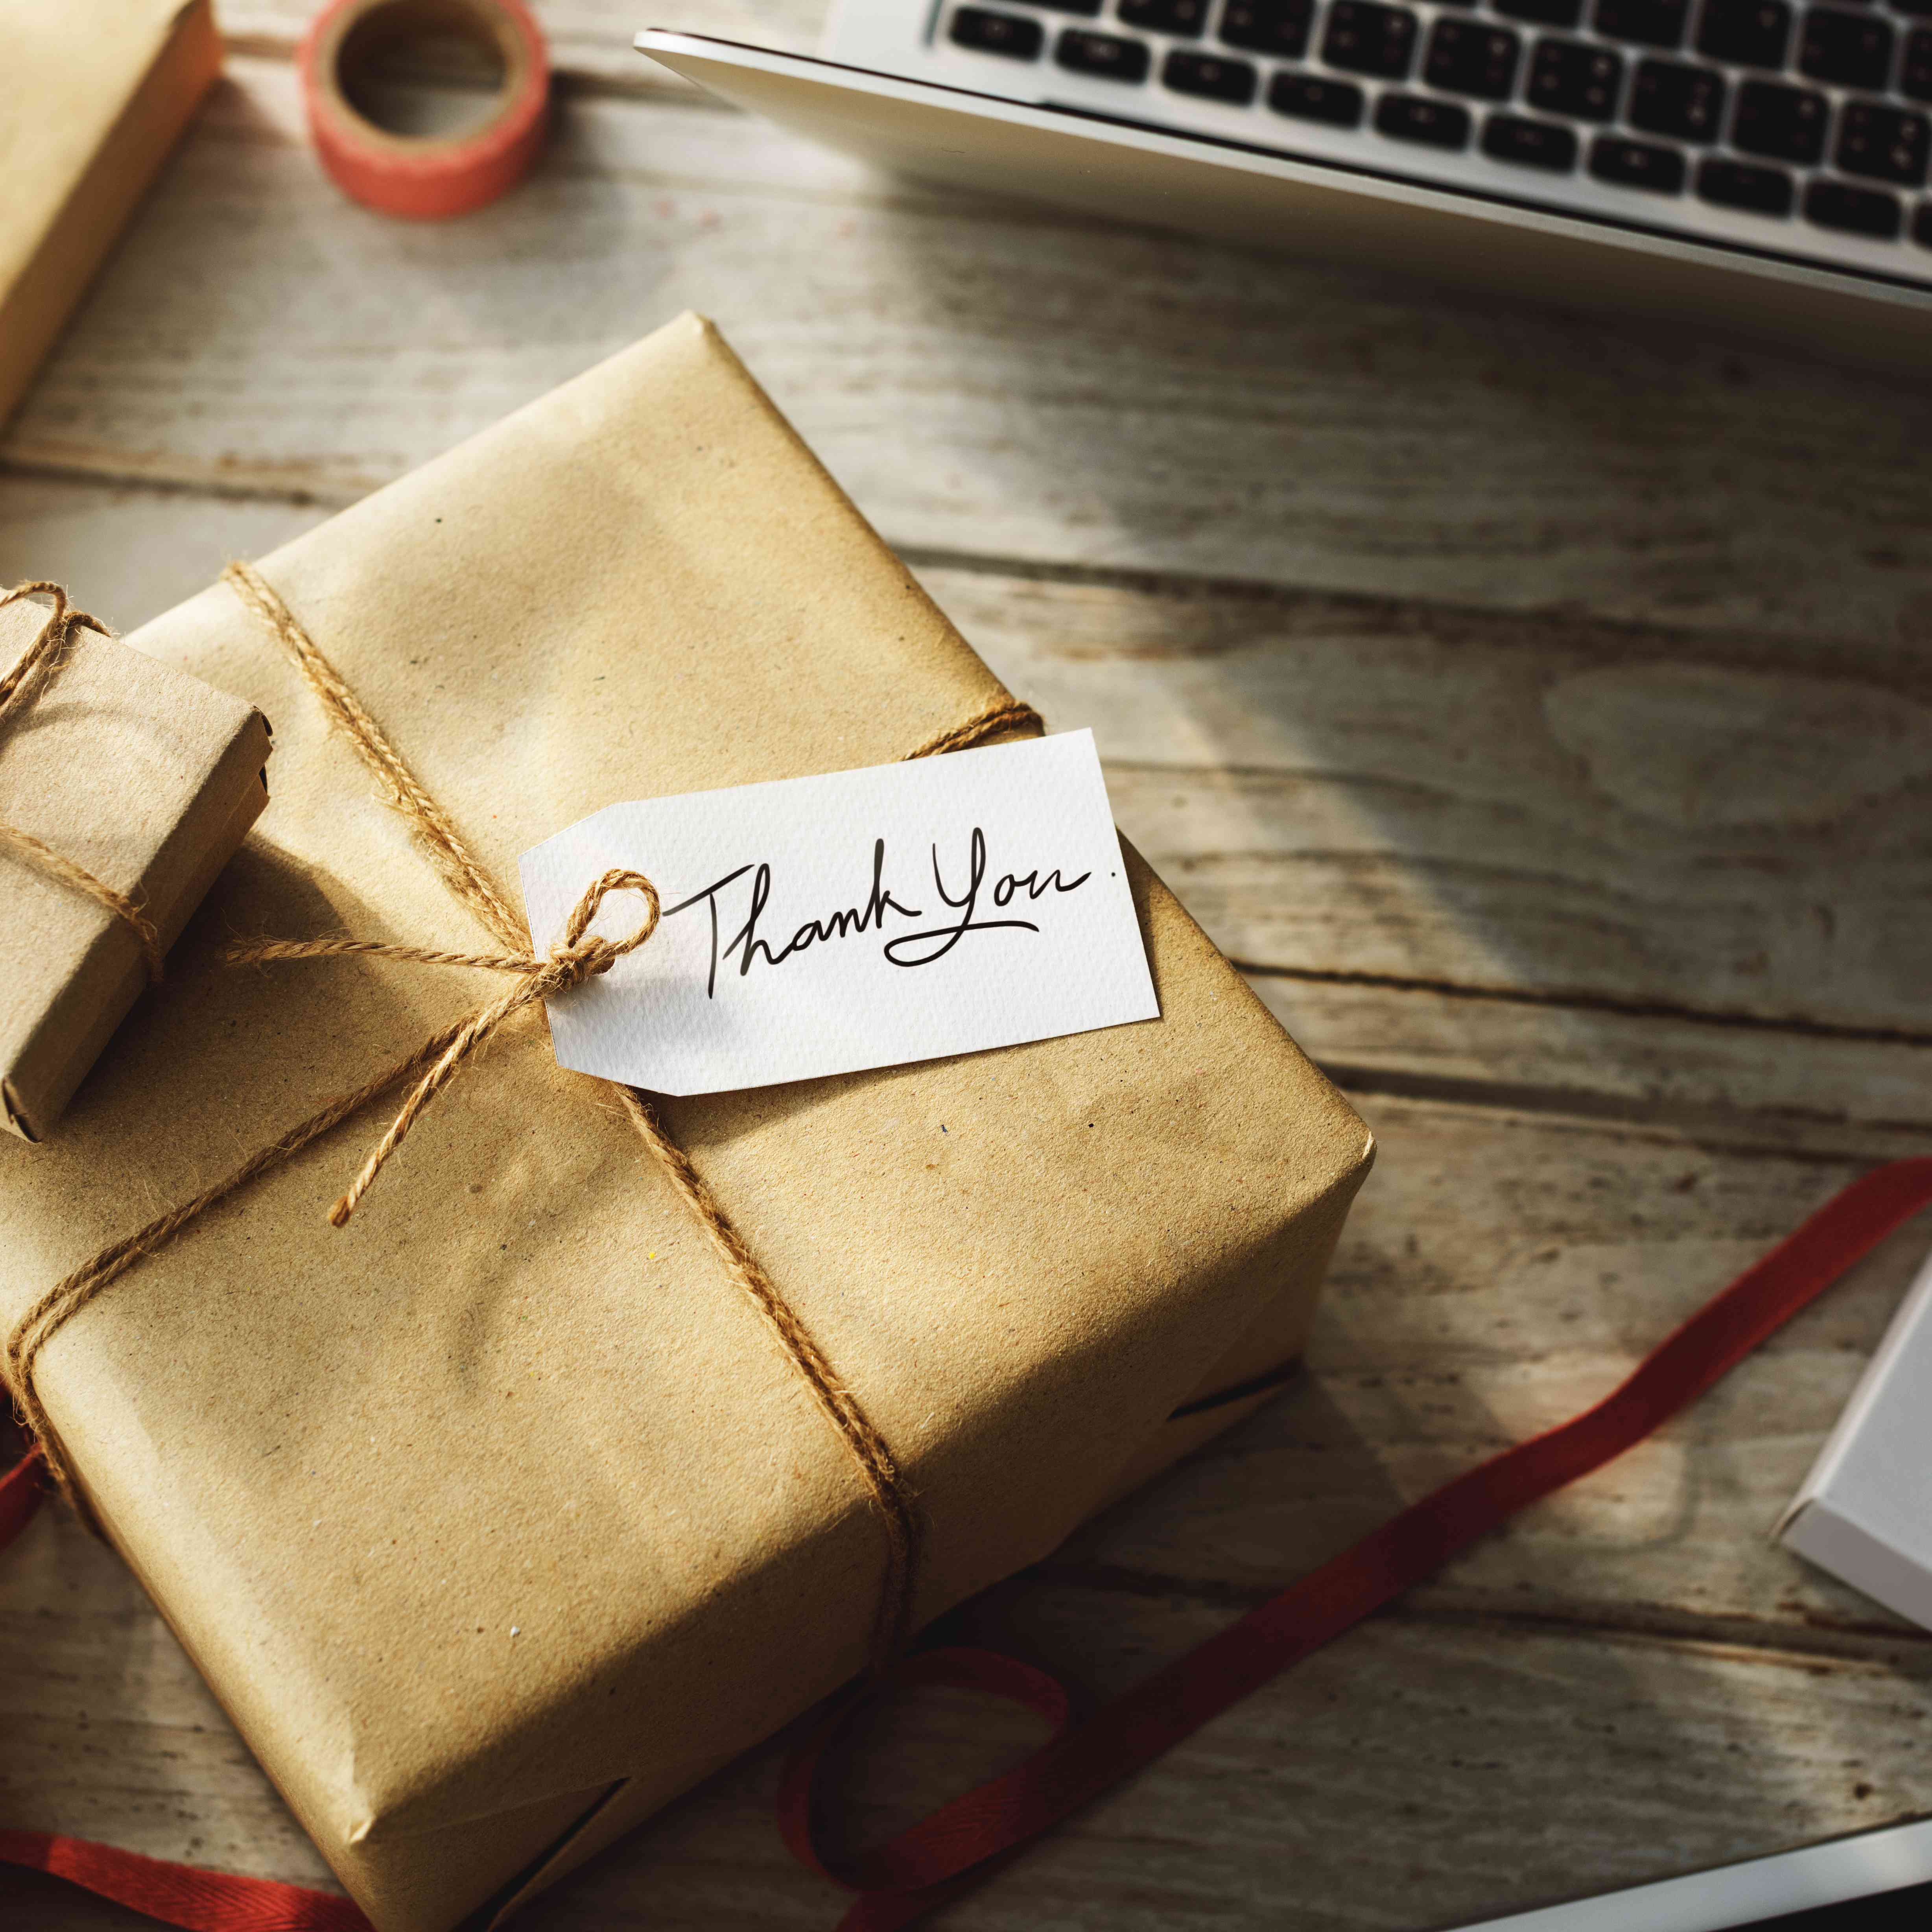 Bridesmaid Wedding Gift Etiquette: Should I Buy A Gift For The Hostess Of My Bridal Shower?